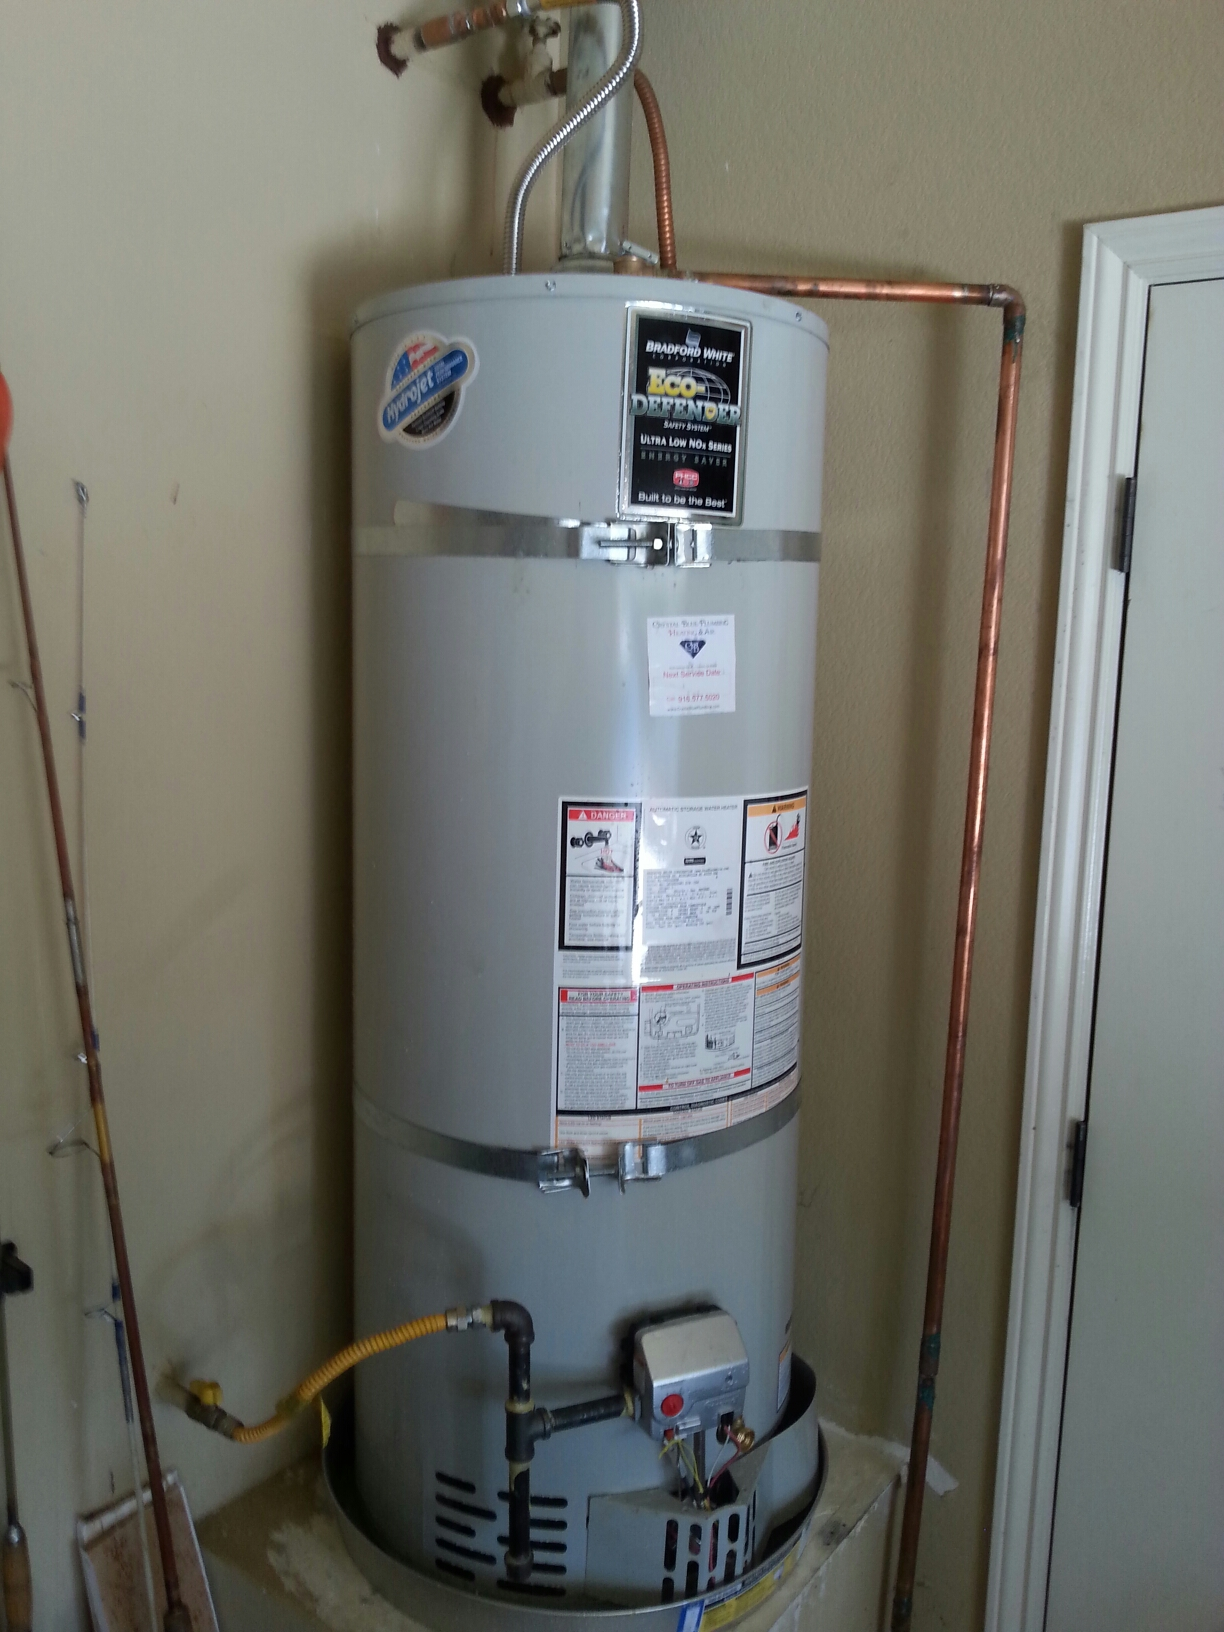 Roseville, CA - Roseville water heater repair on hot water supply. Plumbing fix an Bradford white water heater us working perfect.